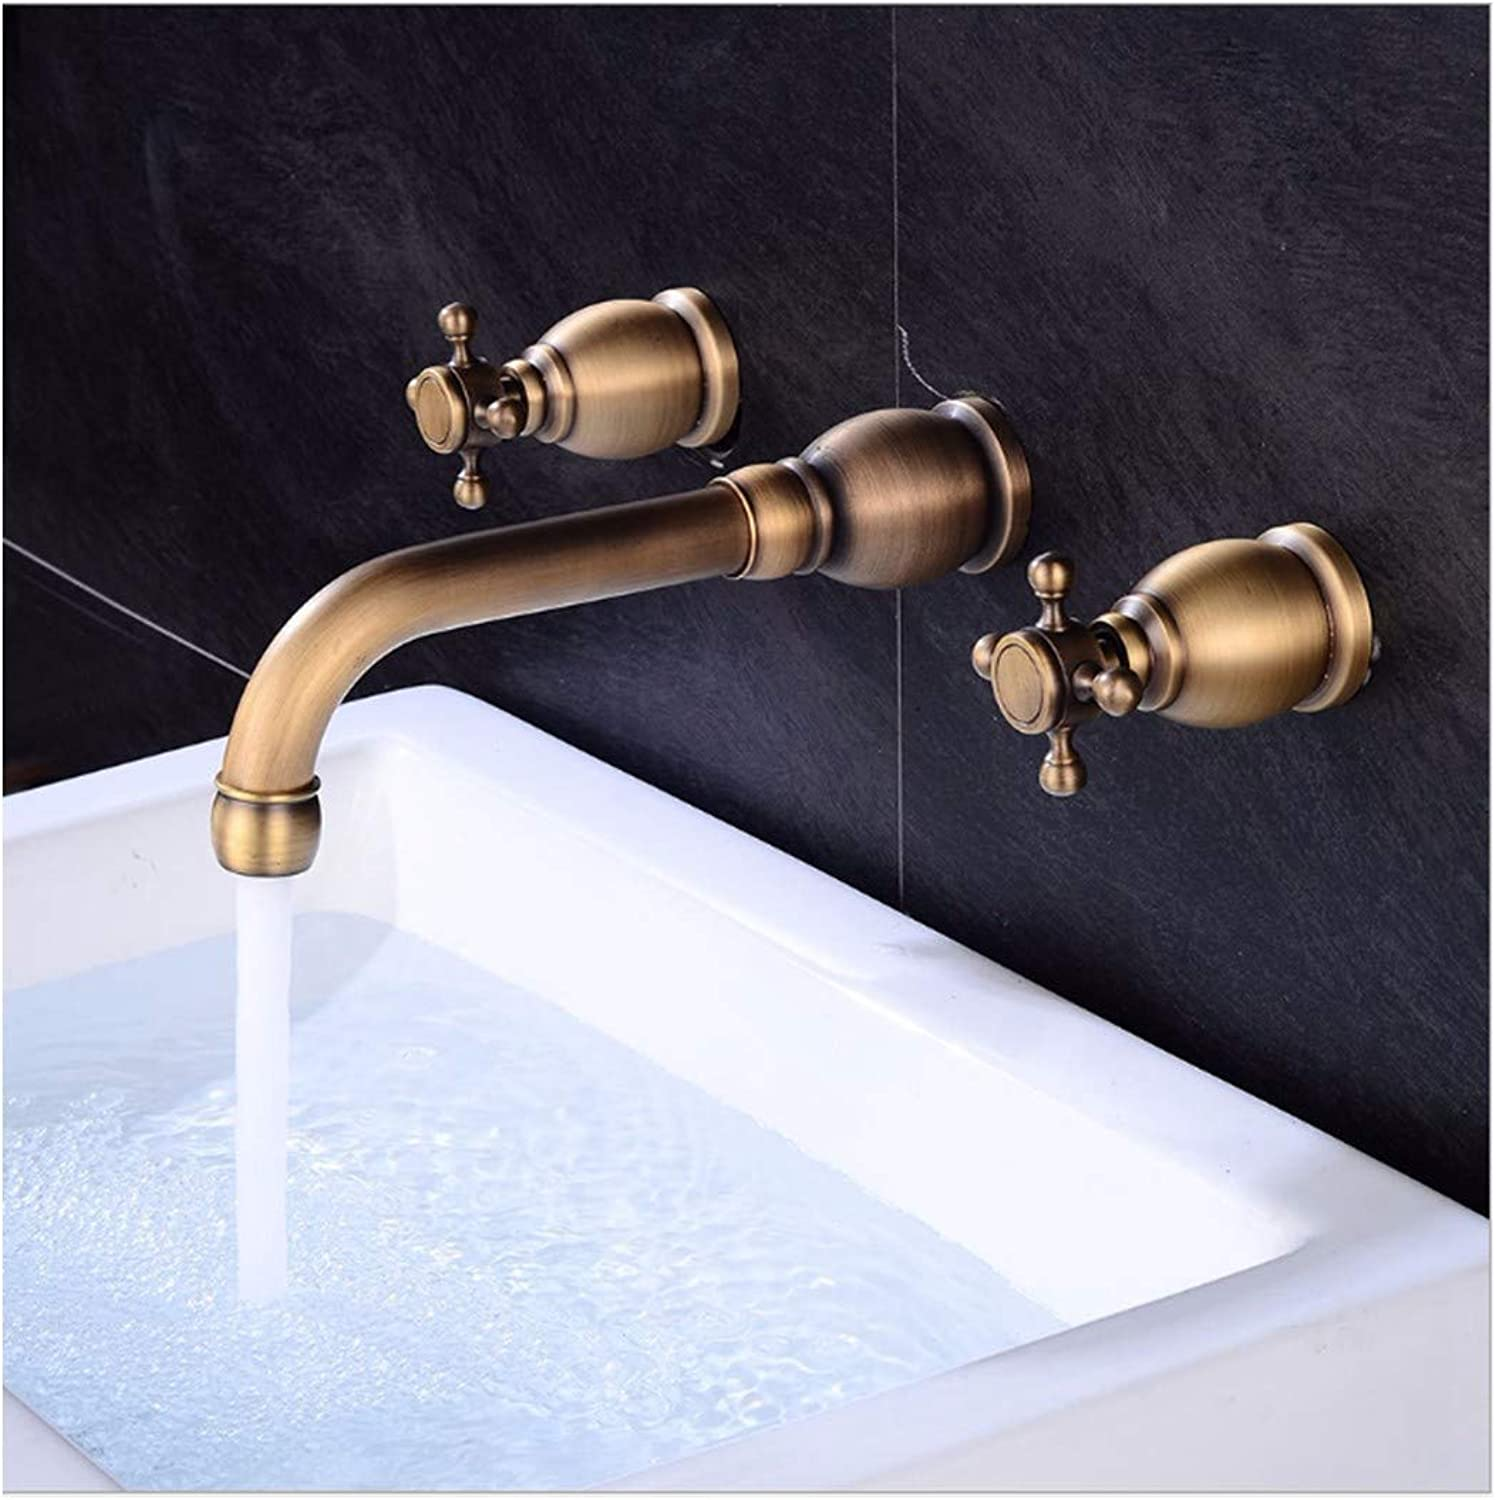 PatTheTap Retro Faucet Vintage Drawing Brass Wall Tap Bathroom Washasin Water Tap Hot and Cold Mixing Water-Tap Round Seat 3-Hole 2 Handle